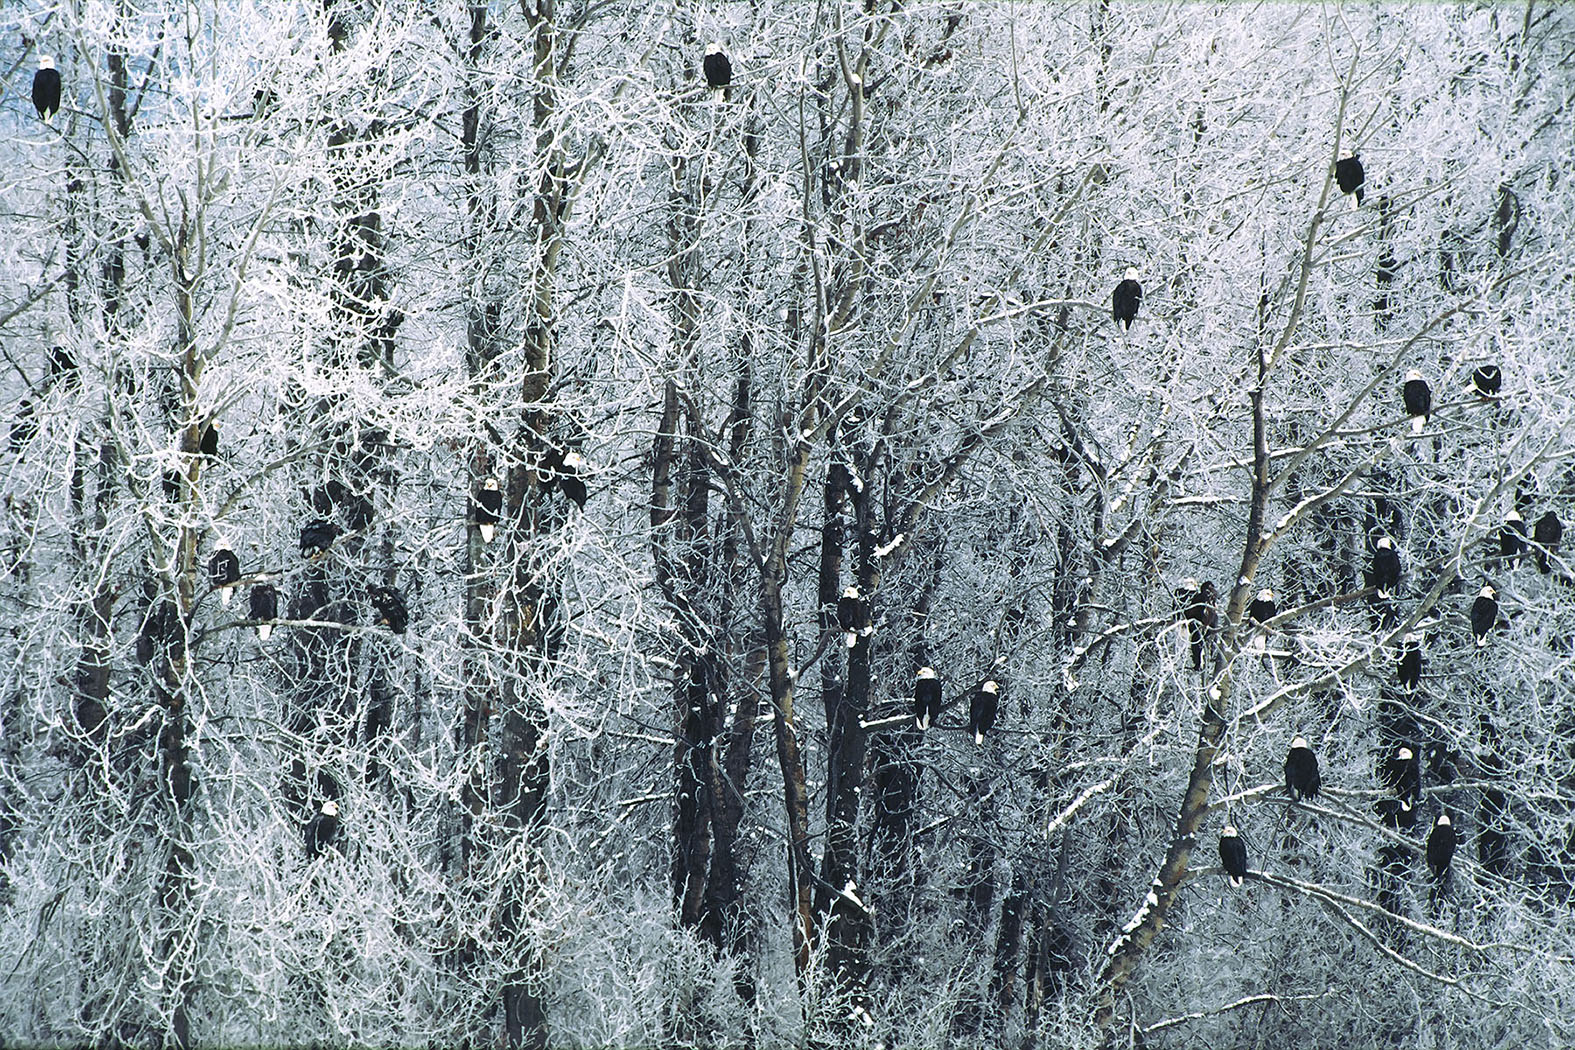 Bald Eagles in New Snow on Cottonwood Trees